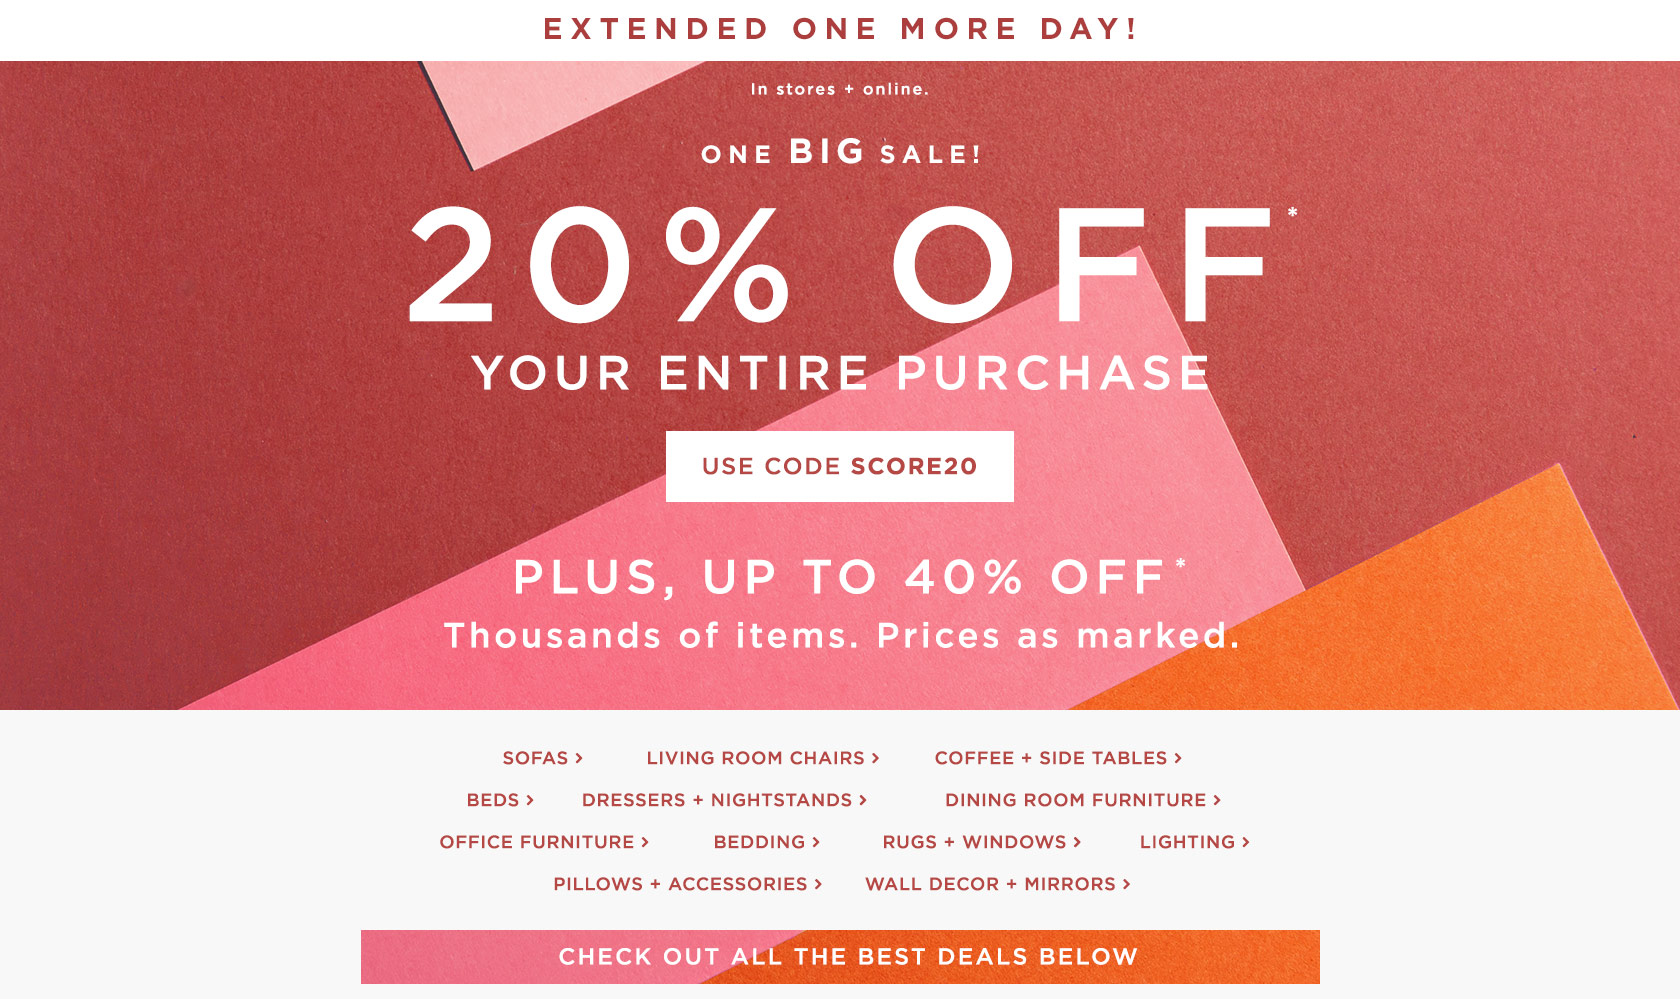 Extended One More Day! 20% Off Your Entire Purchase! Use Code SCORE20